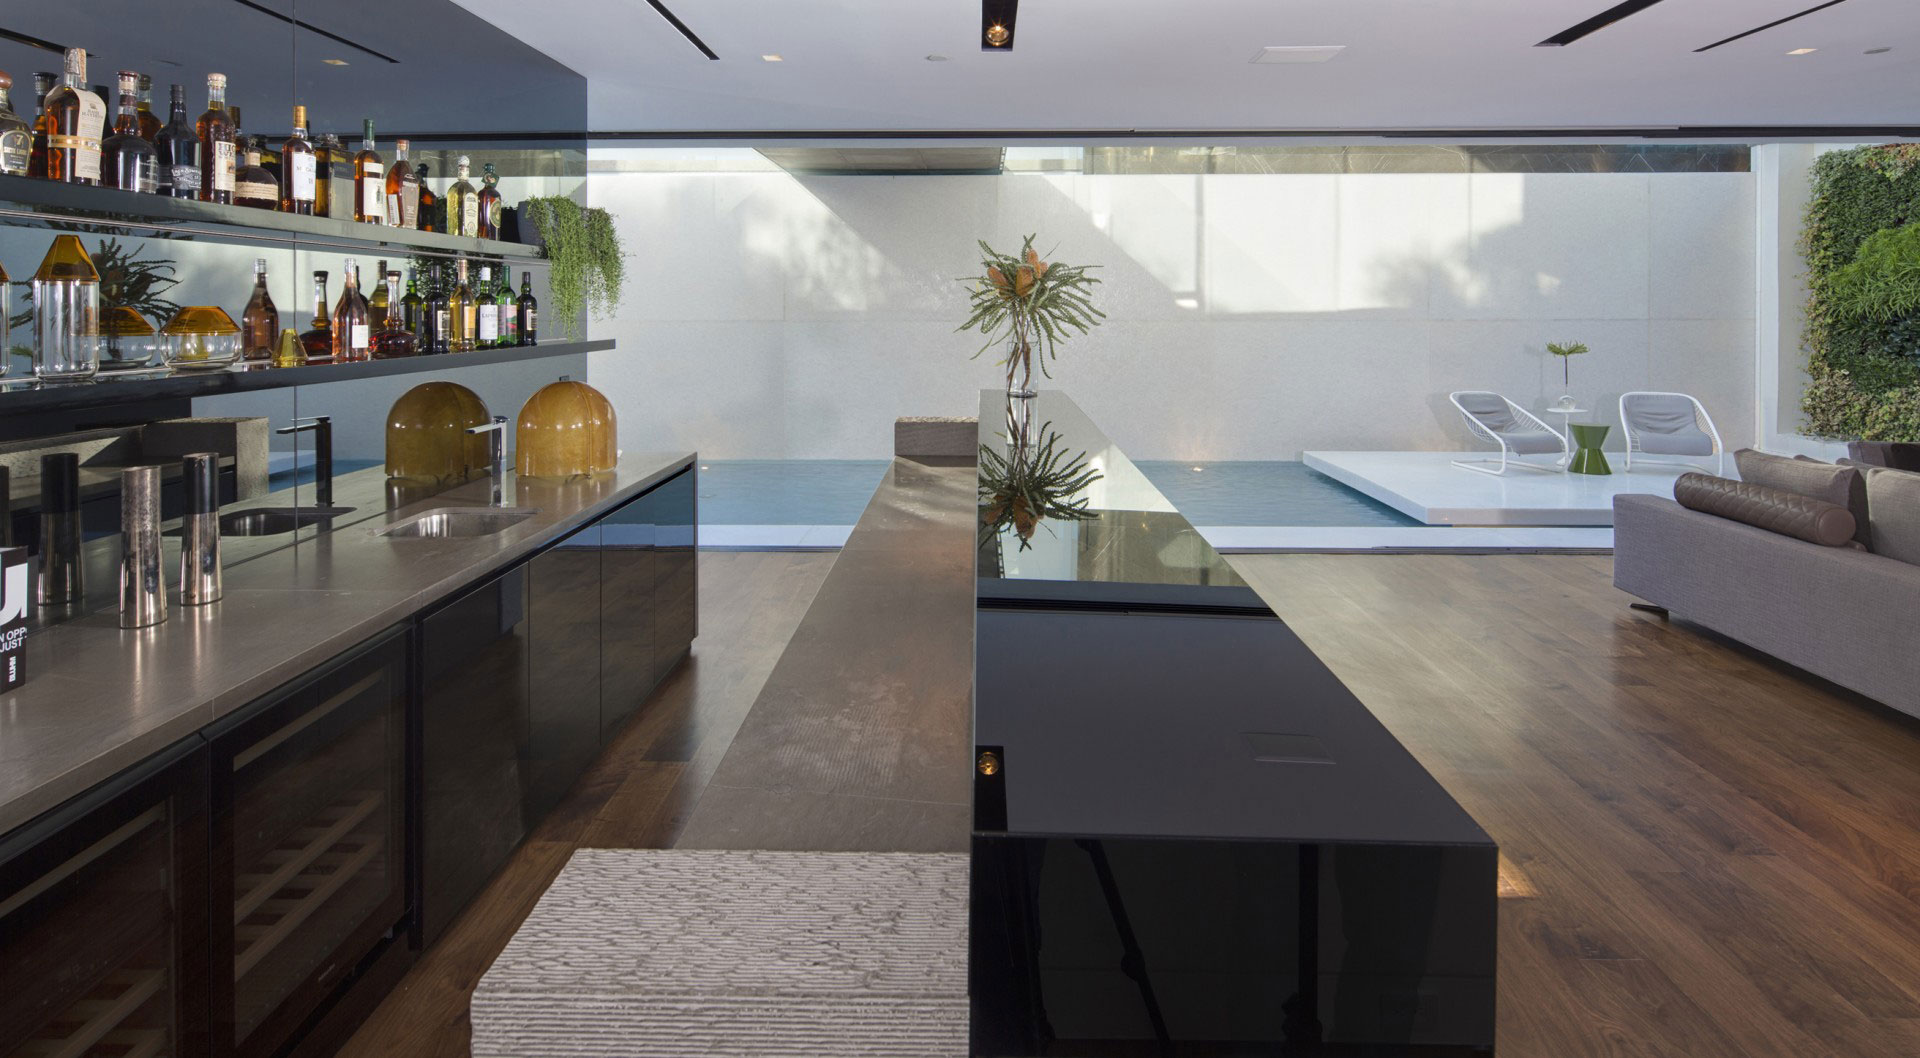 Home Bars Design Ideas: A Dramatic Glass Home Overlooking The L.A. Basin